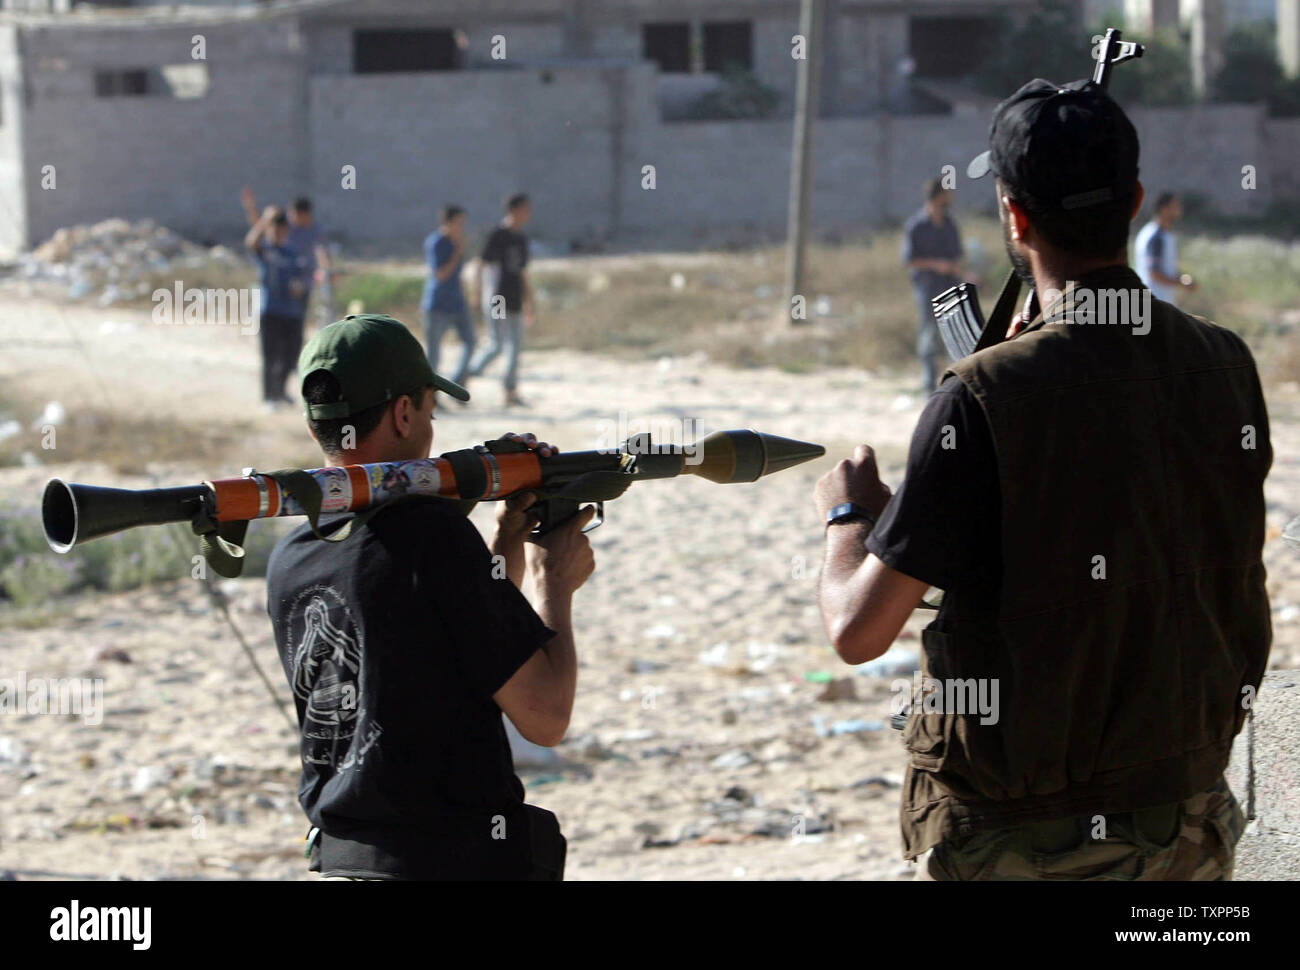 Palestinian fighters hold their guns as they face off with an Israeli tank during clashes in Beit Lahia, northern Gaza Strip on July 6, 2006. Israeli infantry and armor launched a large-scale operation into the northern Gaza Strip in the early morning, effectively establishing a new buffer zone in an attempt to prevent the launch of improved Palestinian Qassam rockets which have struck downtown Ashkelon in the past few days.  (UPI Photo/Ismael Mohamad) - Stock Image